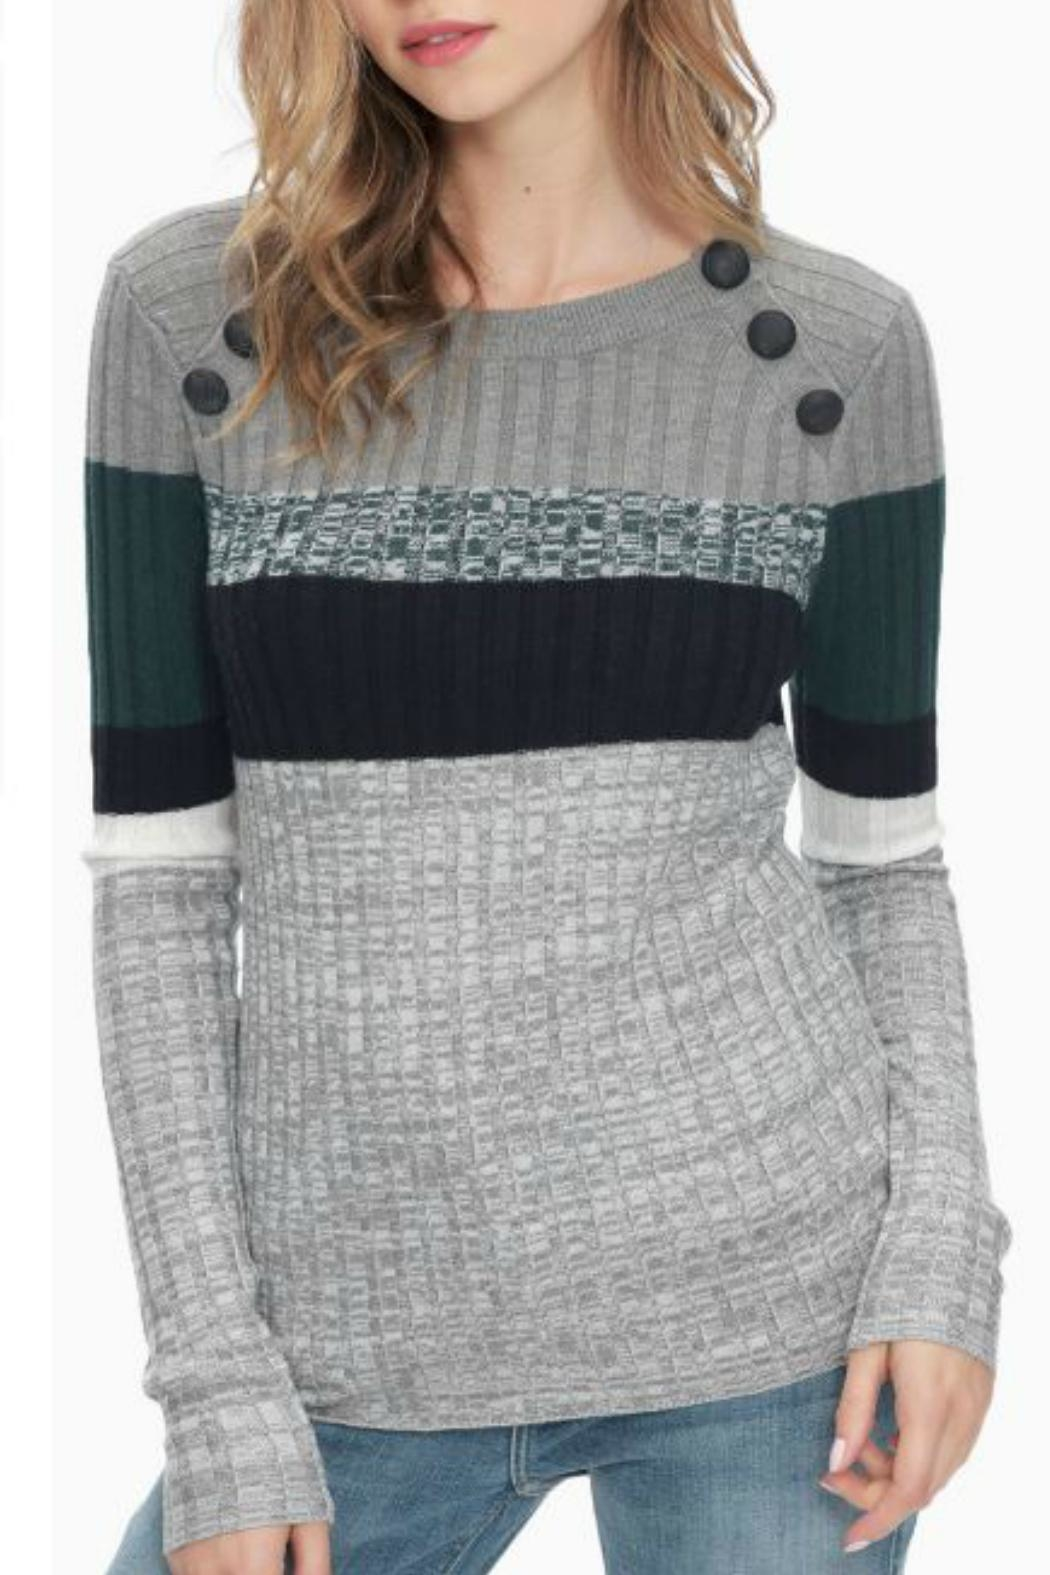 7f7c37a77d93e Splendid The Merton Cashmere Sweater from New Jersey by Robin s ...